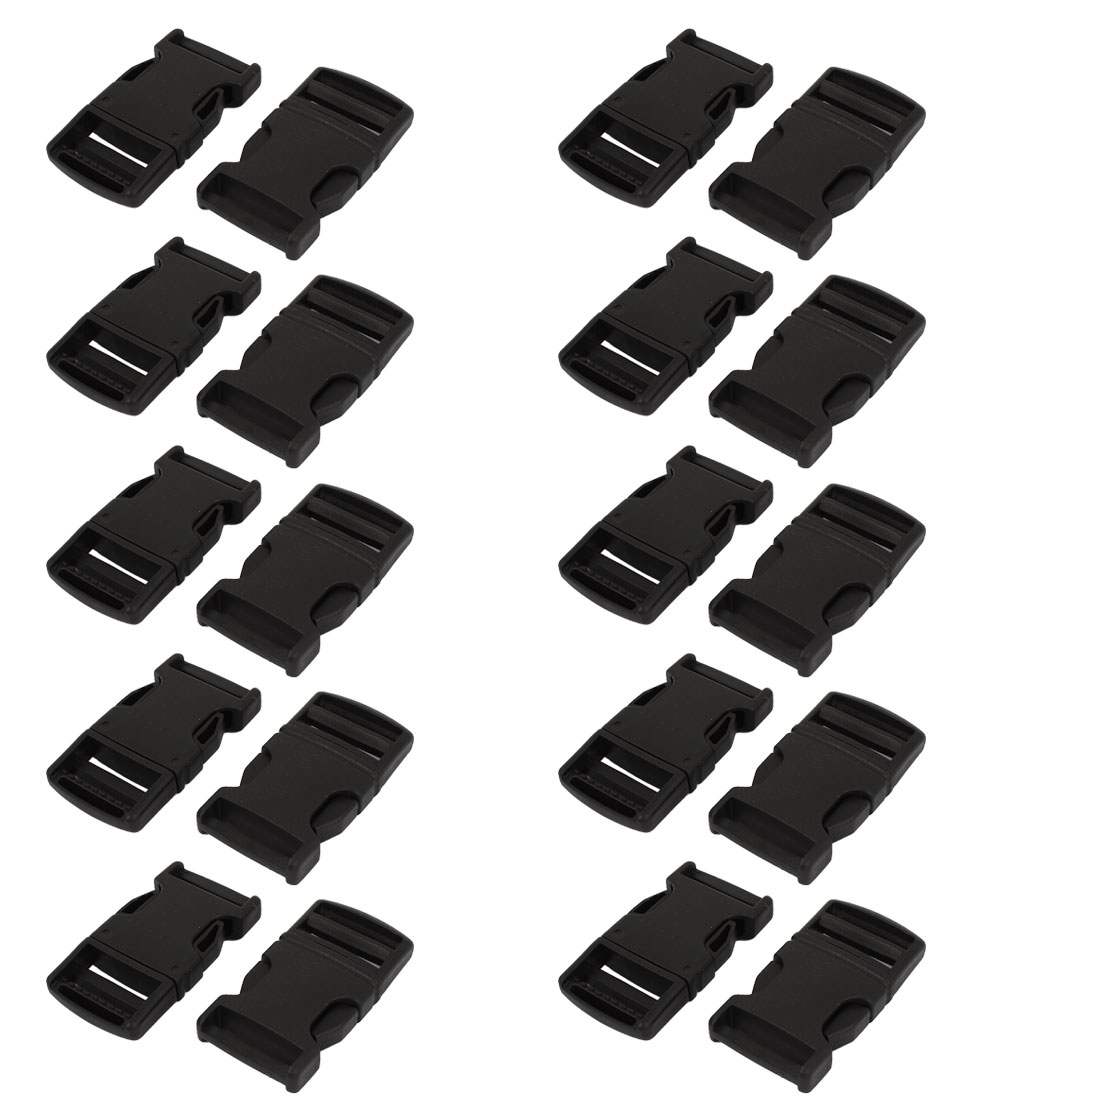 30 Pcs 25mm Belt Wide Luggage Safety Quick Release Buckles Black